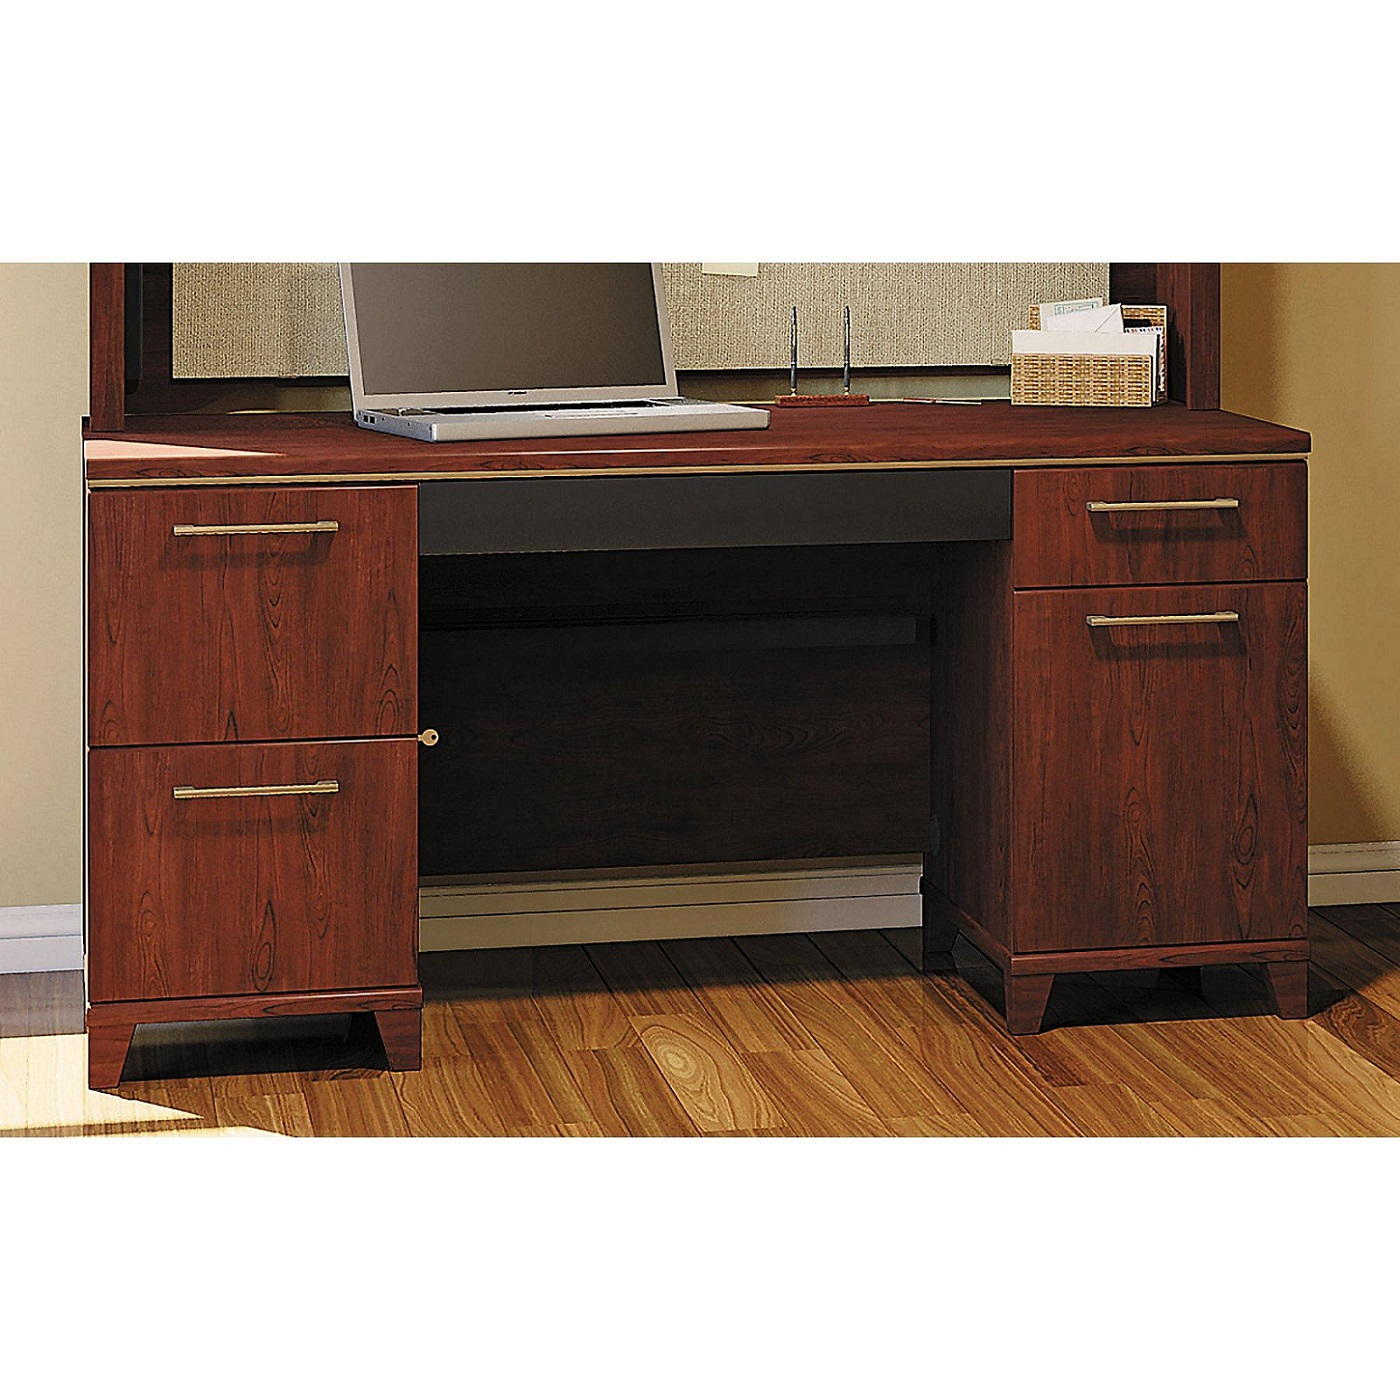 "BUSH BUSINESS FURNITURE HARVEST CHERRY 60""W OFFICE DESK - 2 PEDS EH-2960CS-03K. FREE SHIPPING:</b></font></font></b><br>&#x1F384<font color=red><b>ERGONOMICHOME.COM HOLIDAY SALE - ENDS DEC. 17, 2019</b></font>&#x1F384"